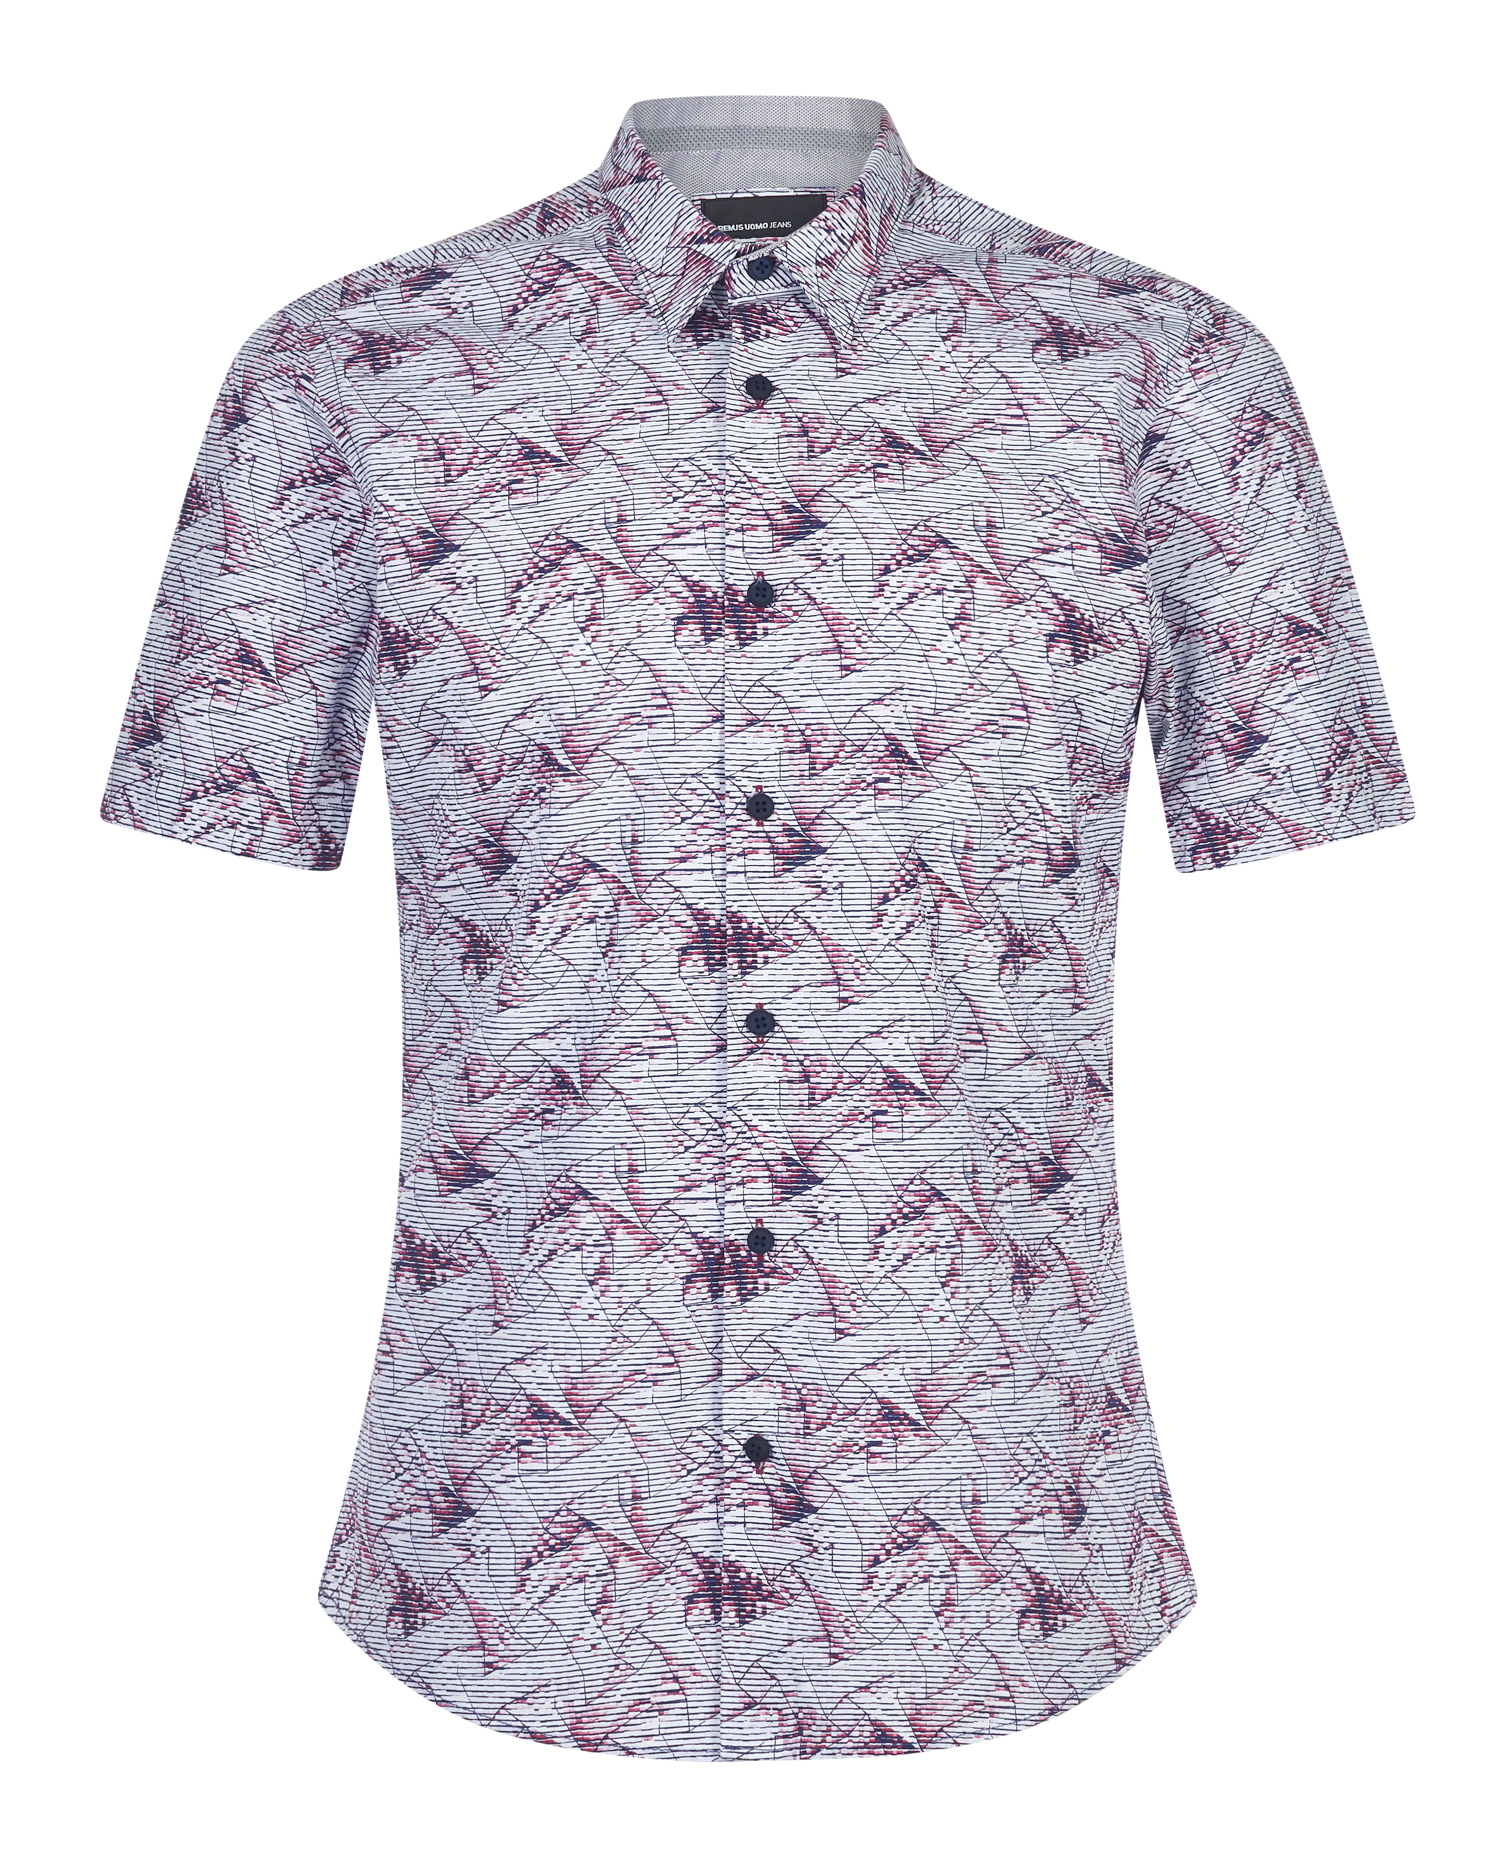 Slim Fit Printed Cotton Short Sleeve Shirt